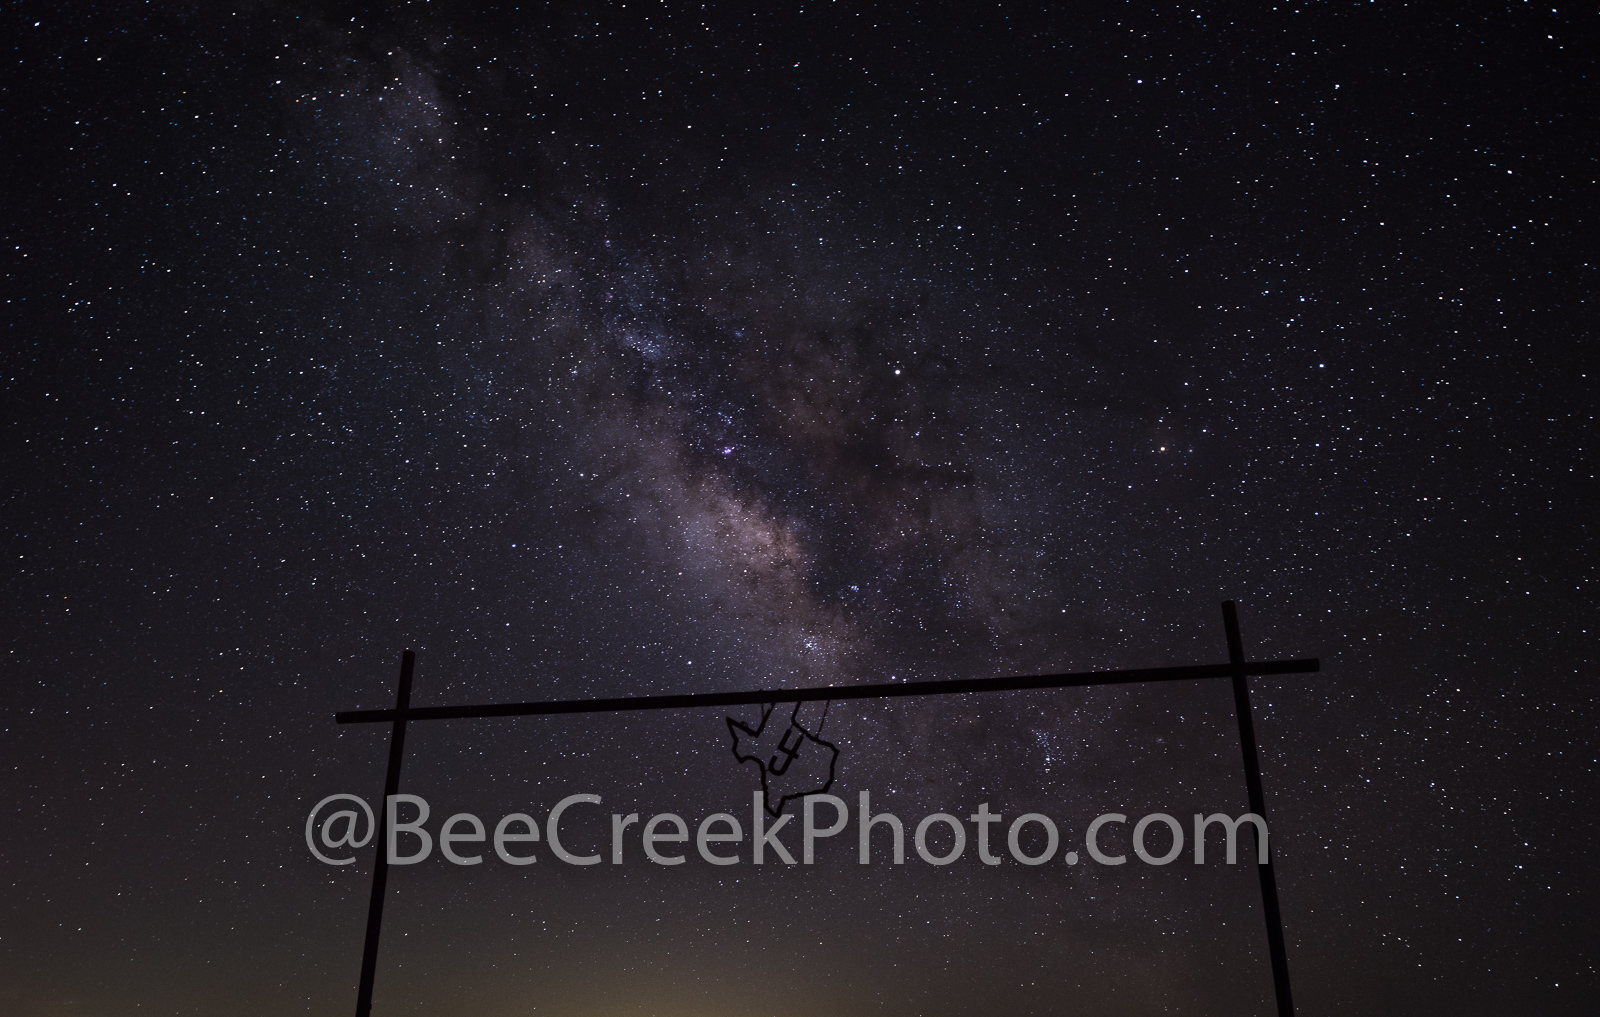 Astronomy, astrophotography, milky way, celestial, gate, ranch, dark,  gallaxy solar system, night, night landscape, night landscapes, night photo, star images, starry, Texas, milky way in texas, Texa, photo